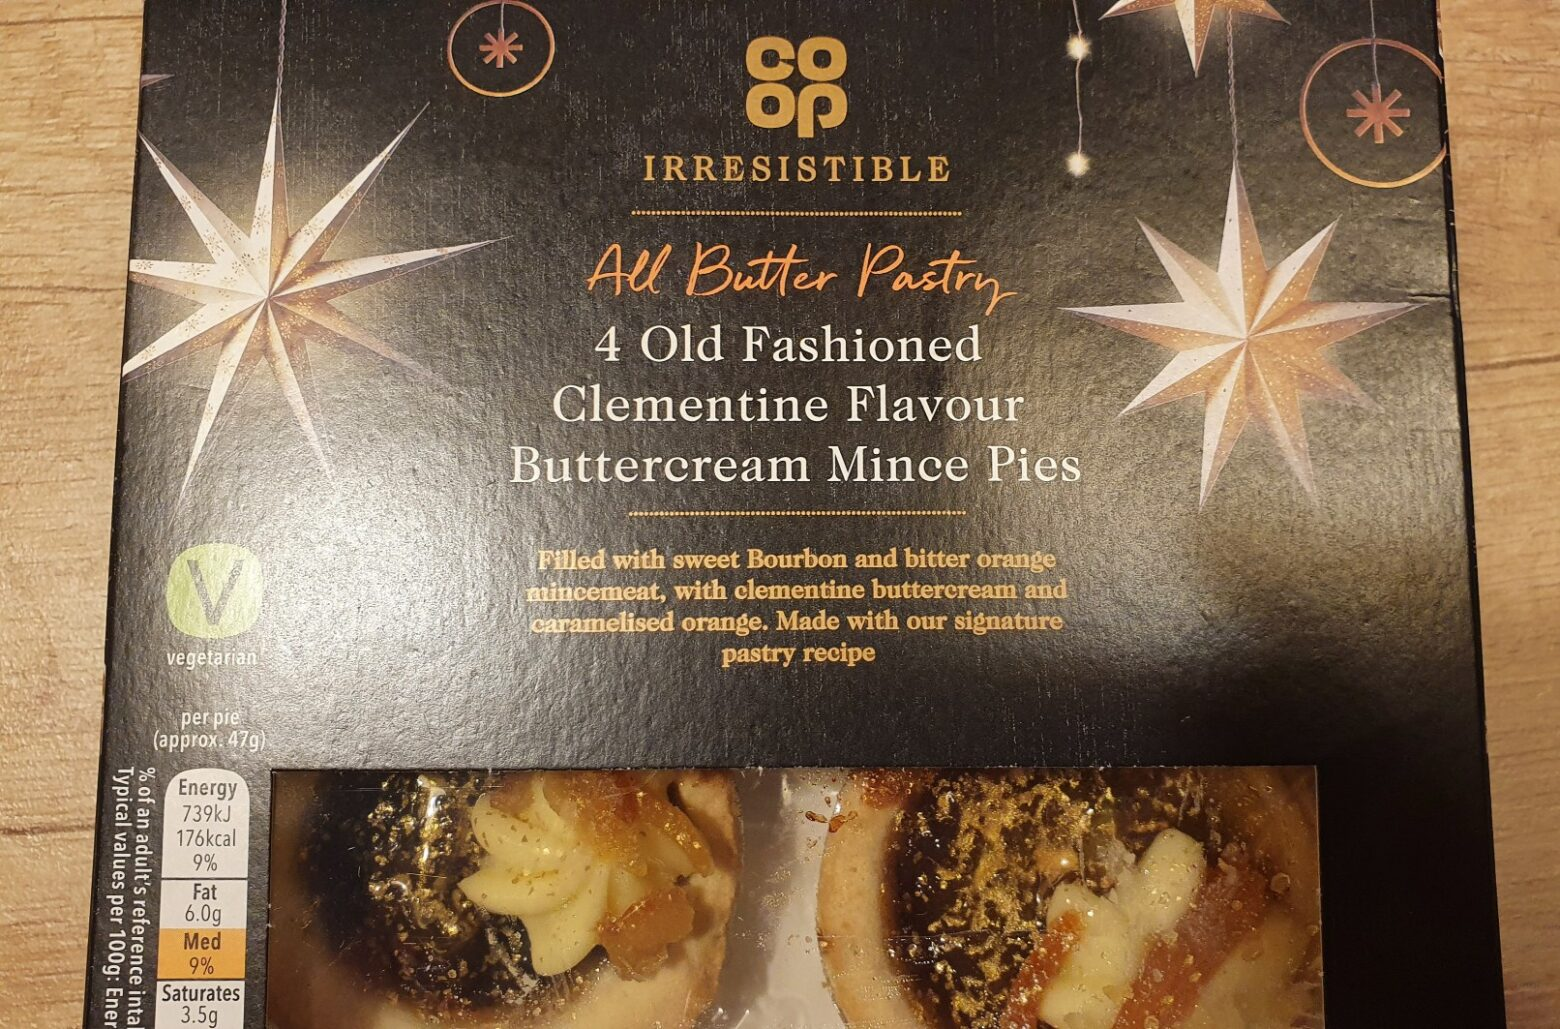 Co-op Old Fashioned Clementine Flavour Buttercream Mince Pie Review 2020